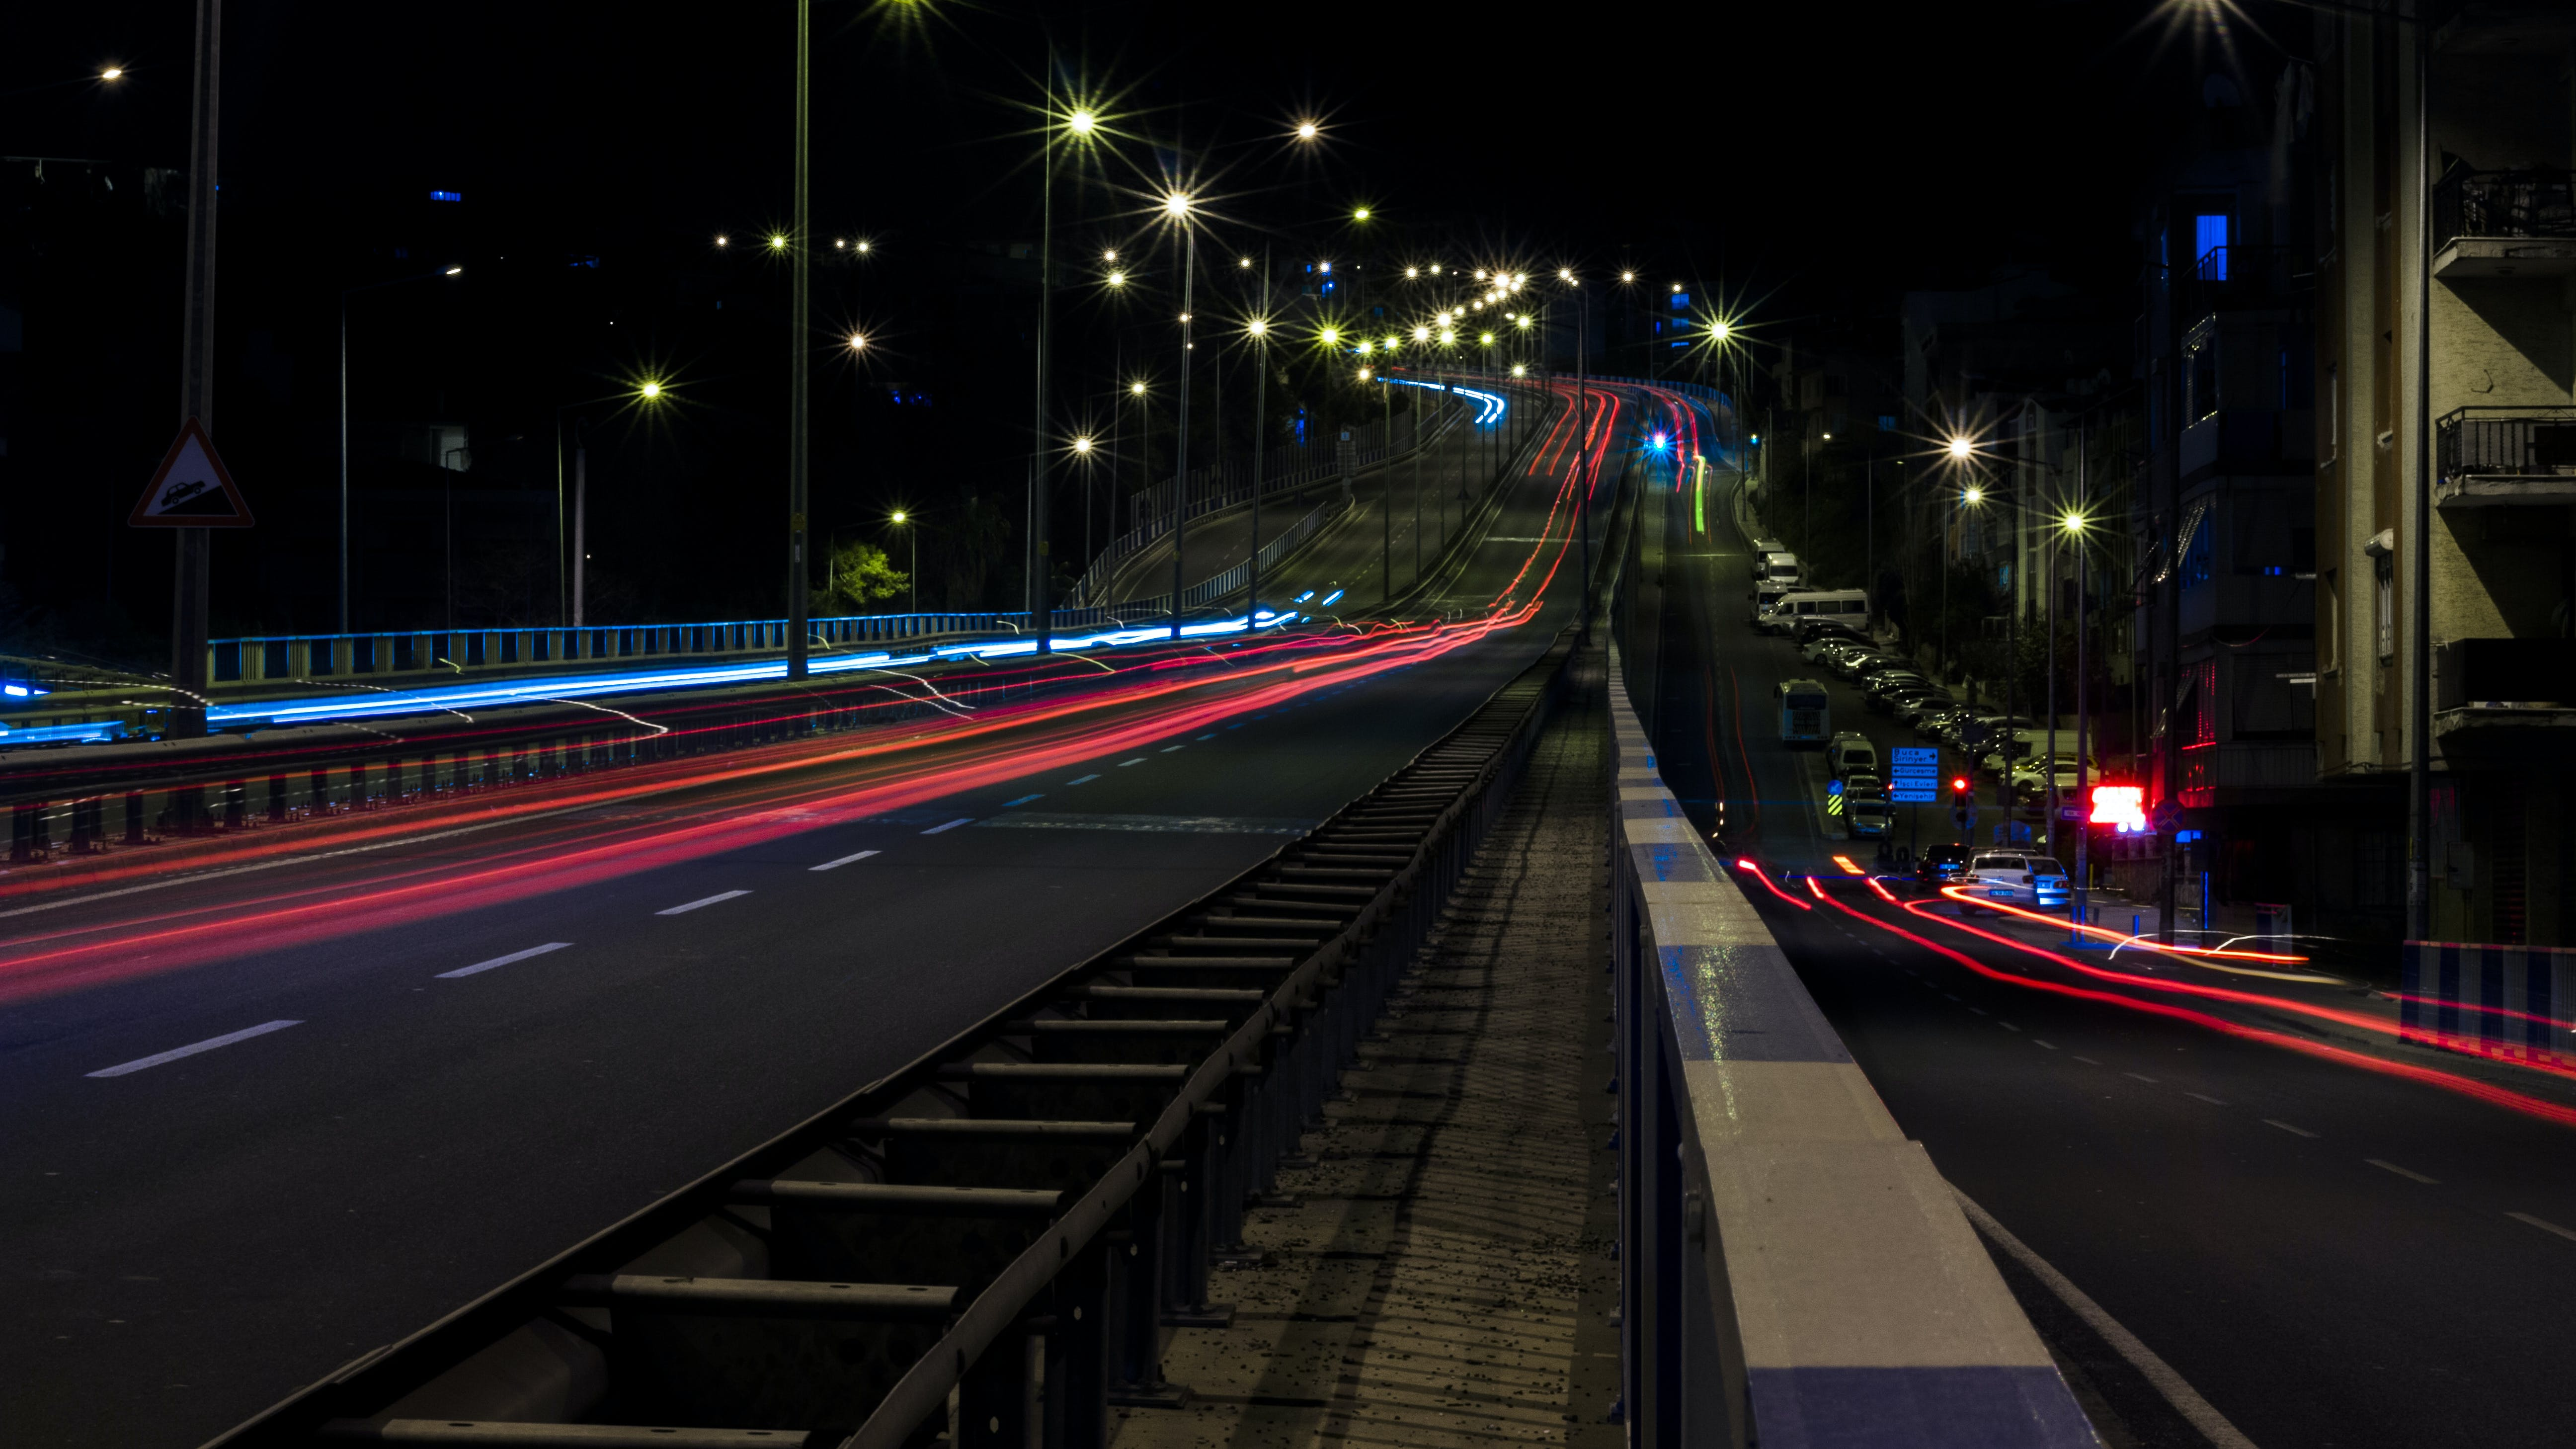 Time Lapse Photo of Road With Cars Passing